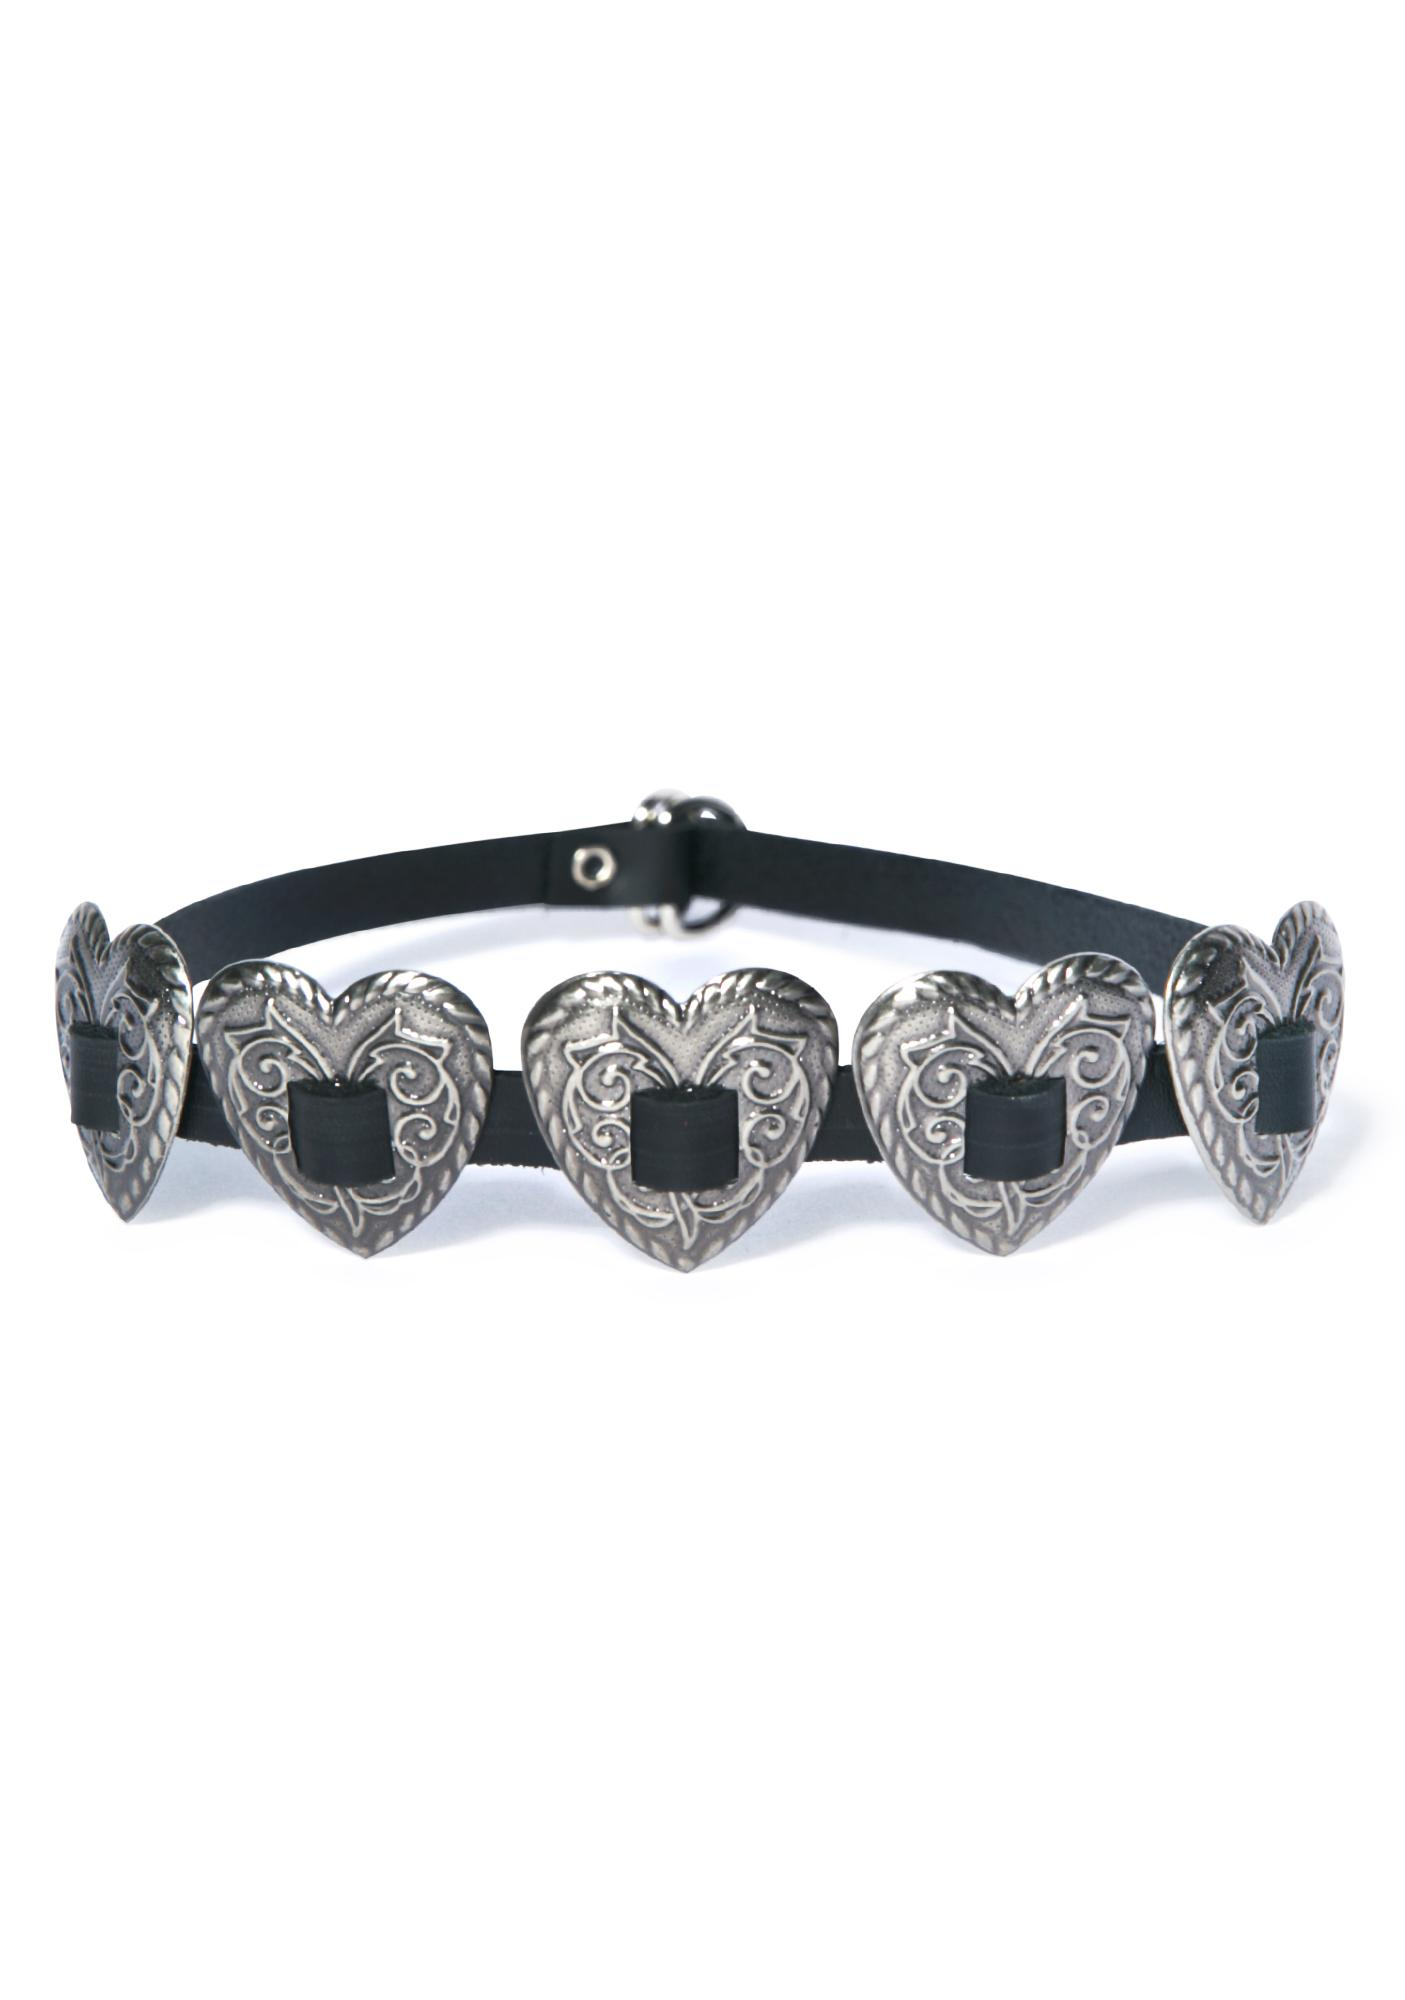 Queen Of Hearts Concho Strap Choker